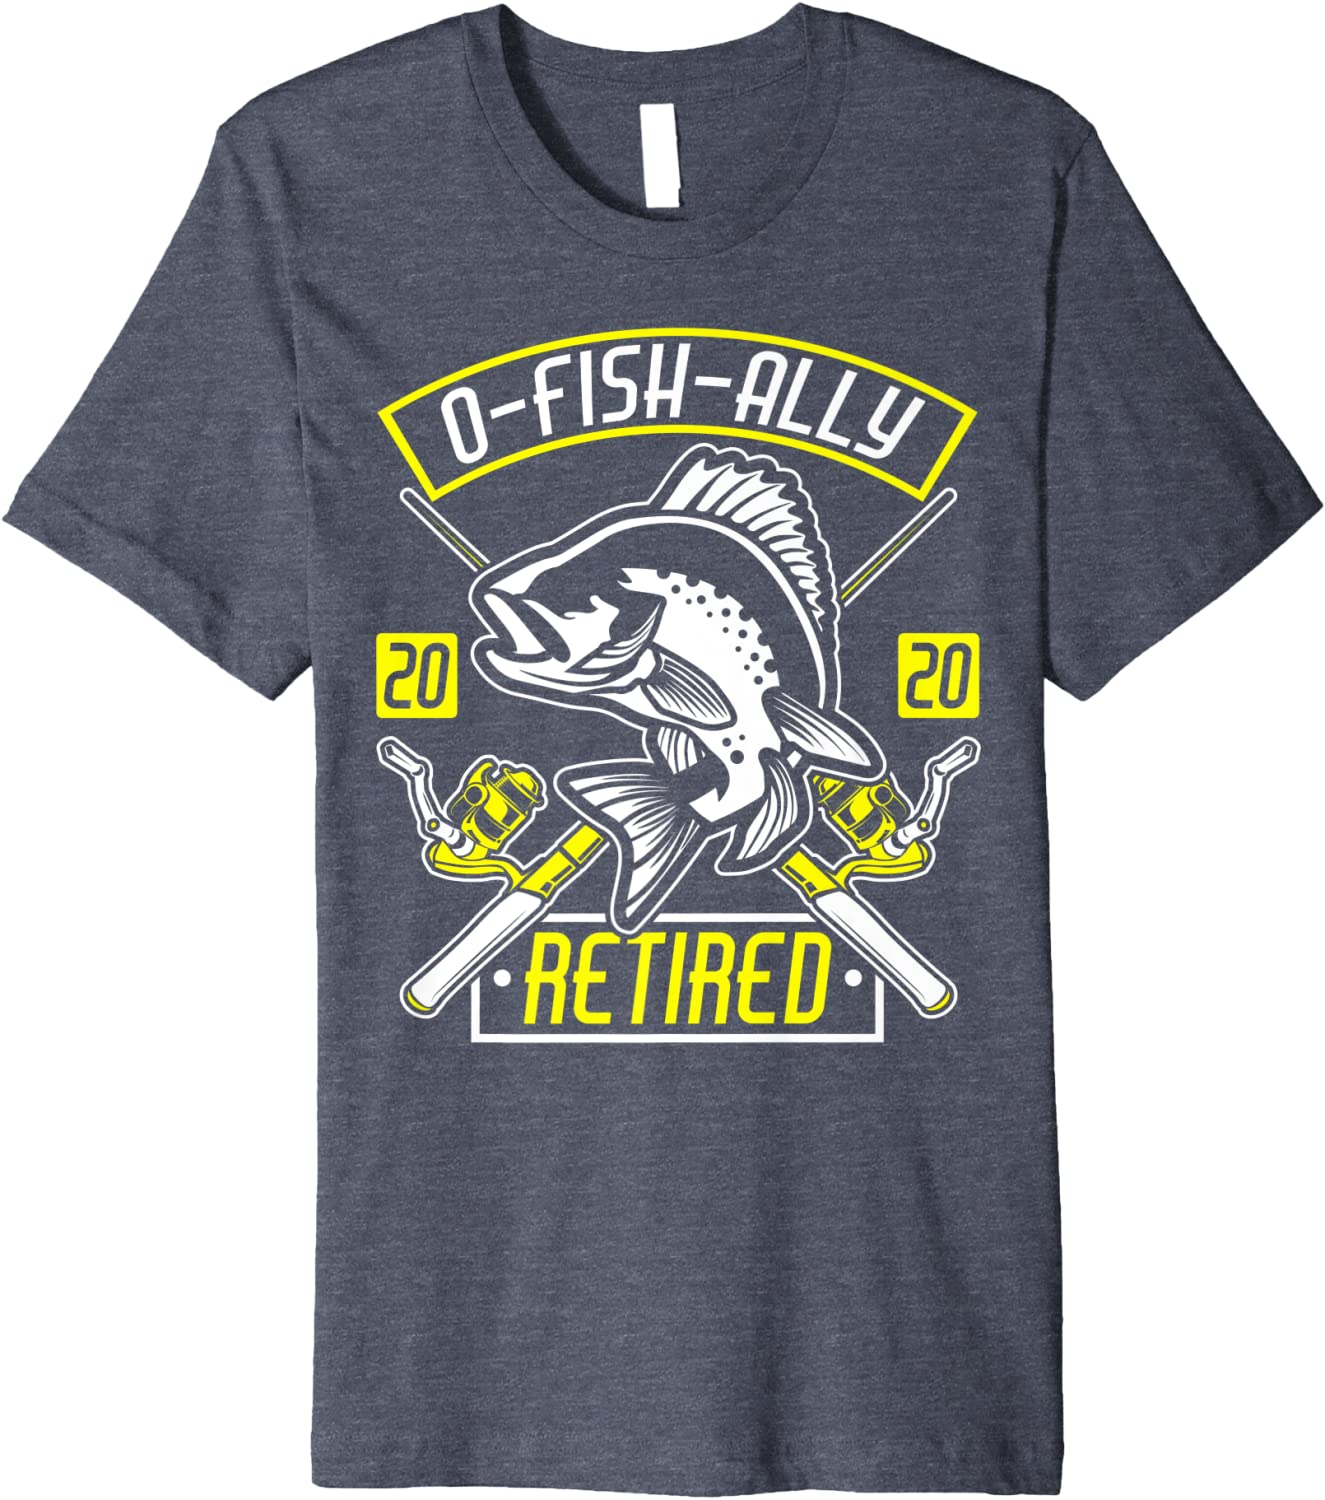 old man hobby Officially Retired retirement tee Bass fishing Love fishing shirt O-fish-ally Retired T-Shirt fishing pole relaxing